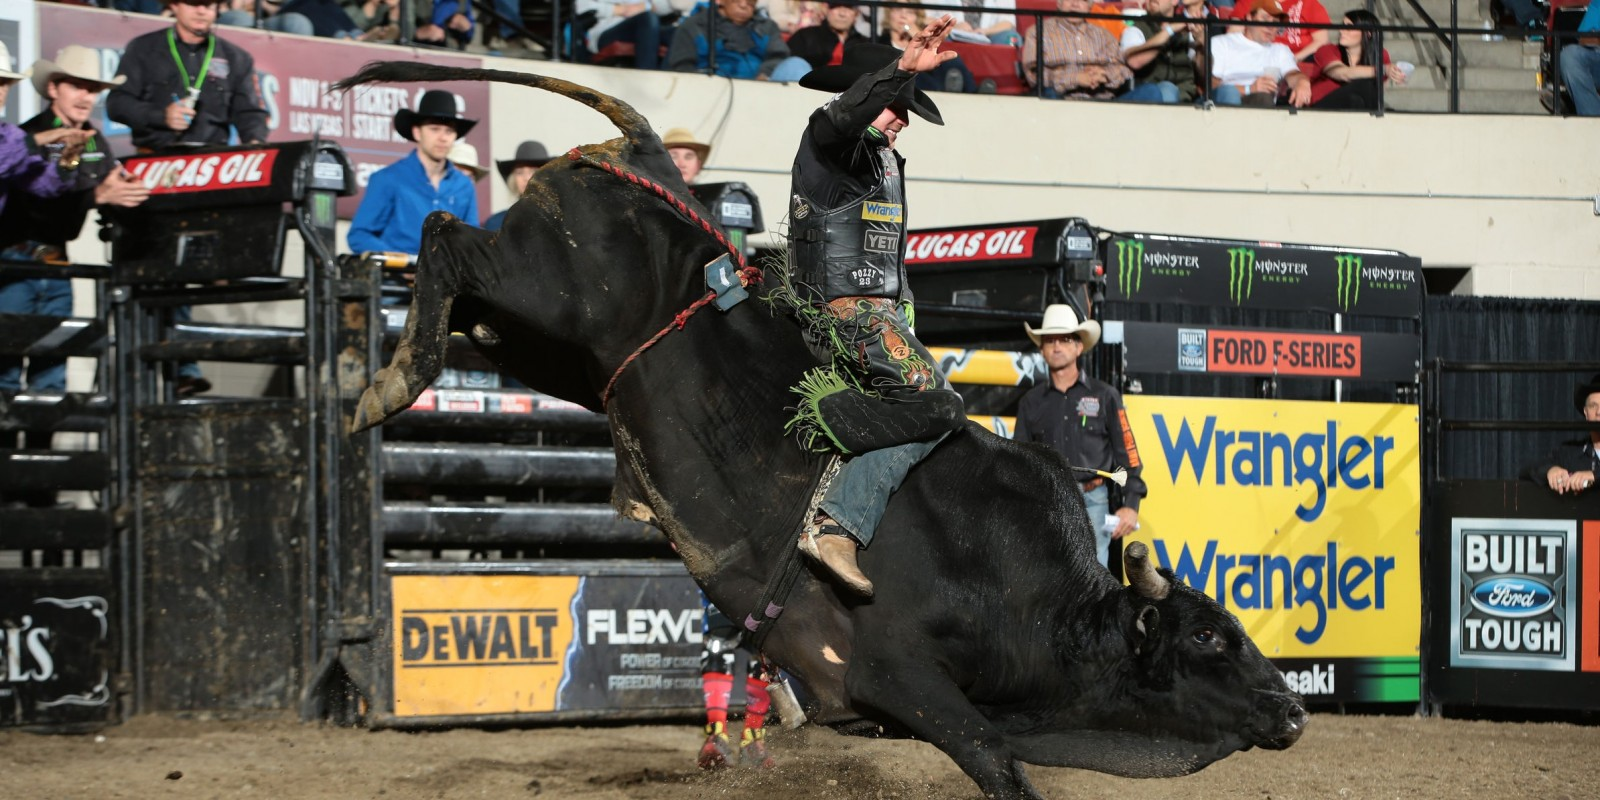 Monster athletes at the 2017 Built Ford Tough Series in Billings, Montana